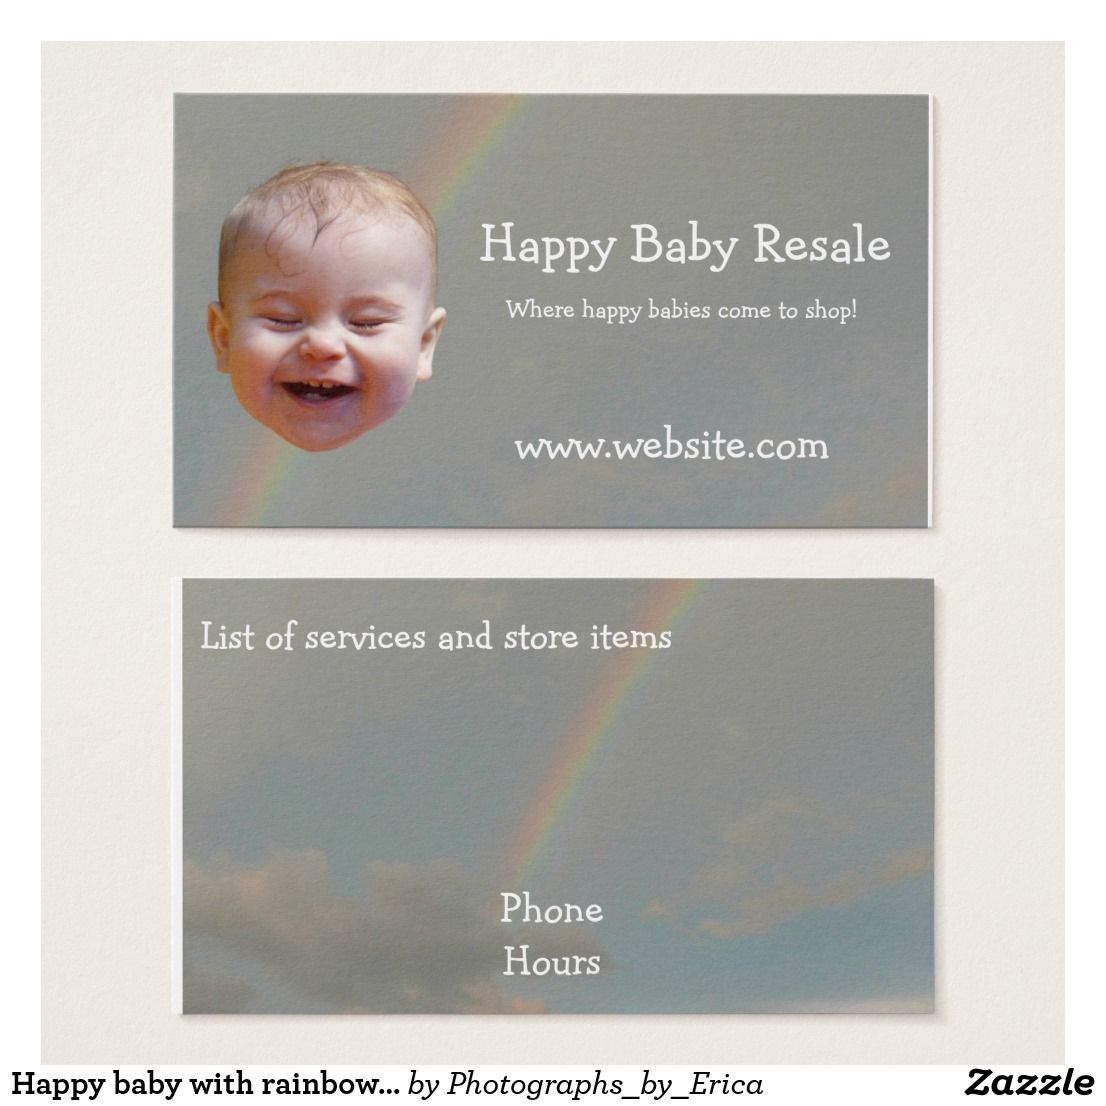 Happy baby with rainbow business cards | Photos on products ...